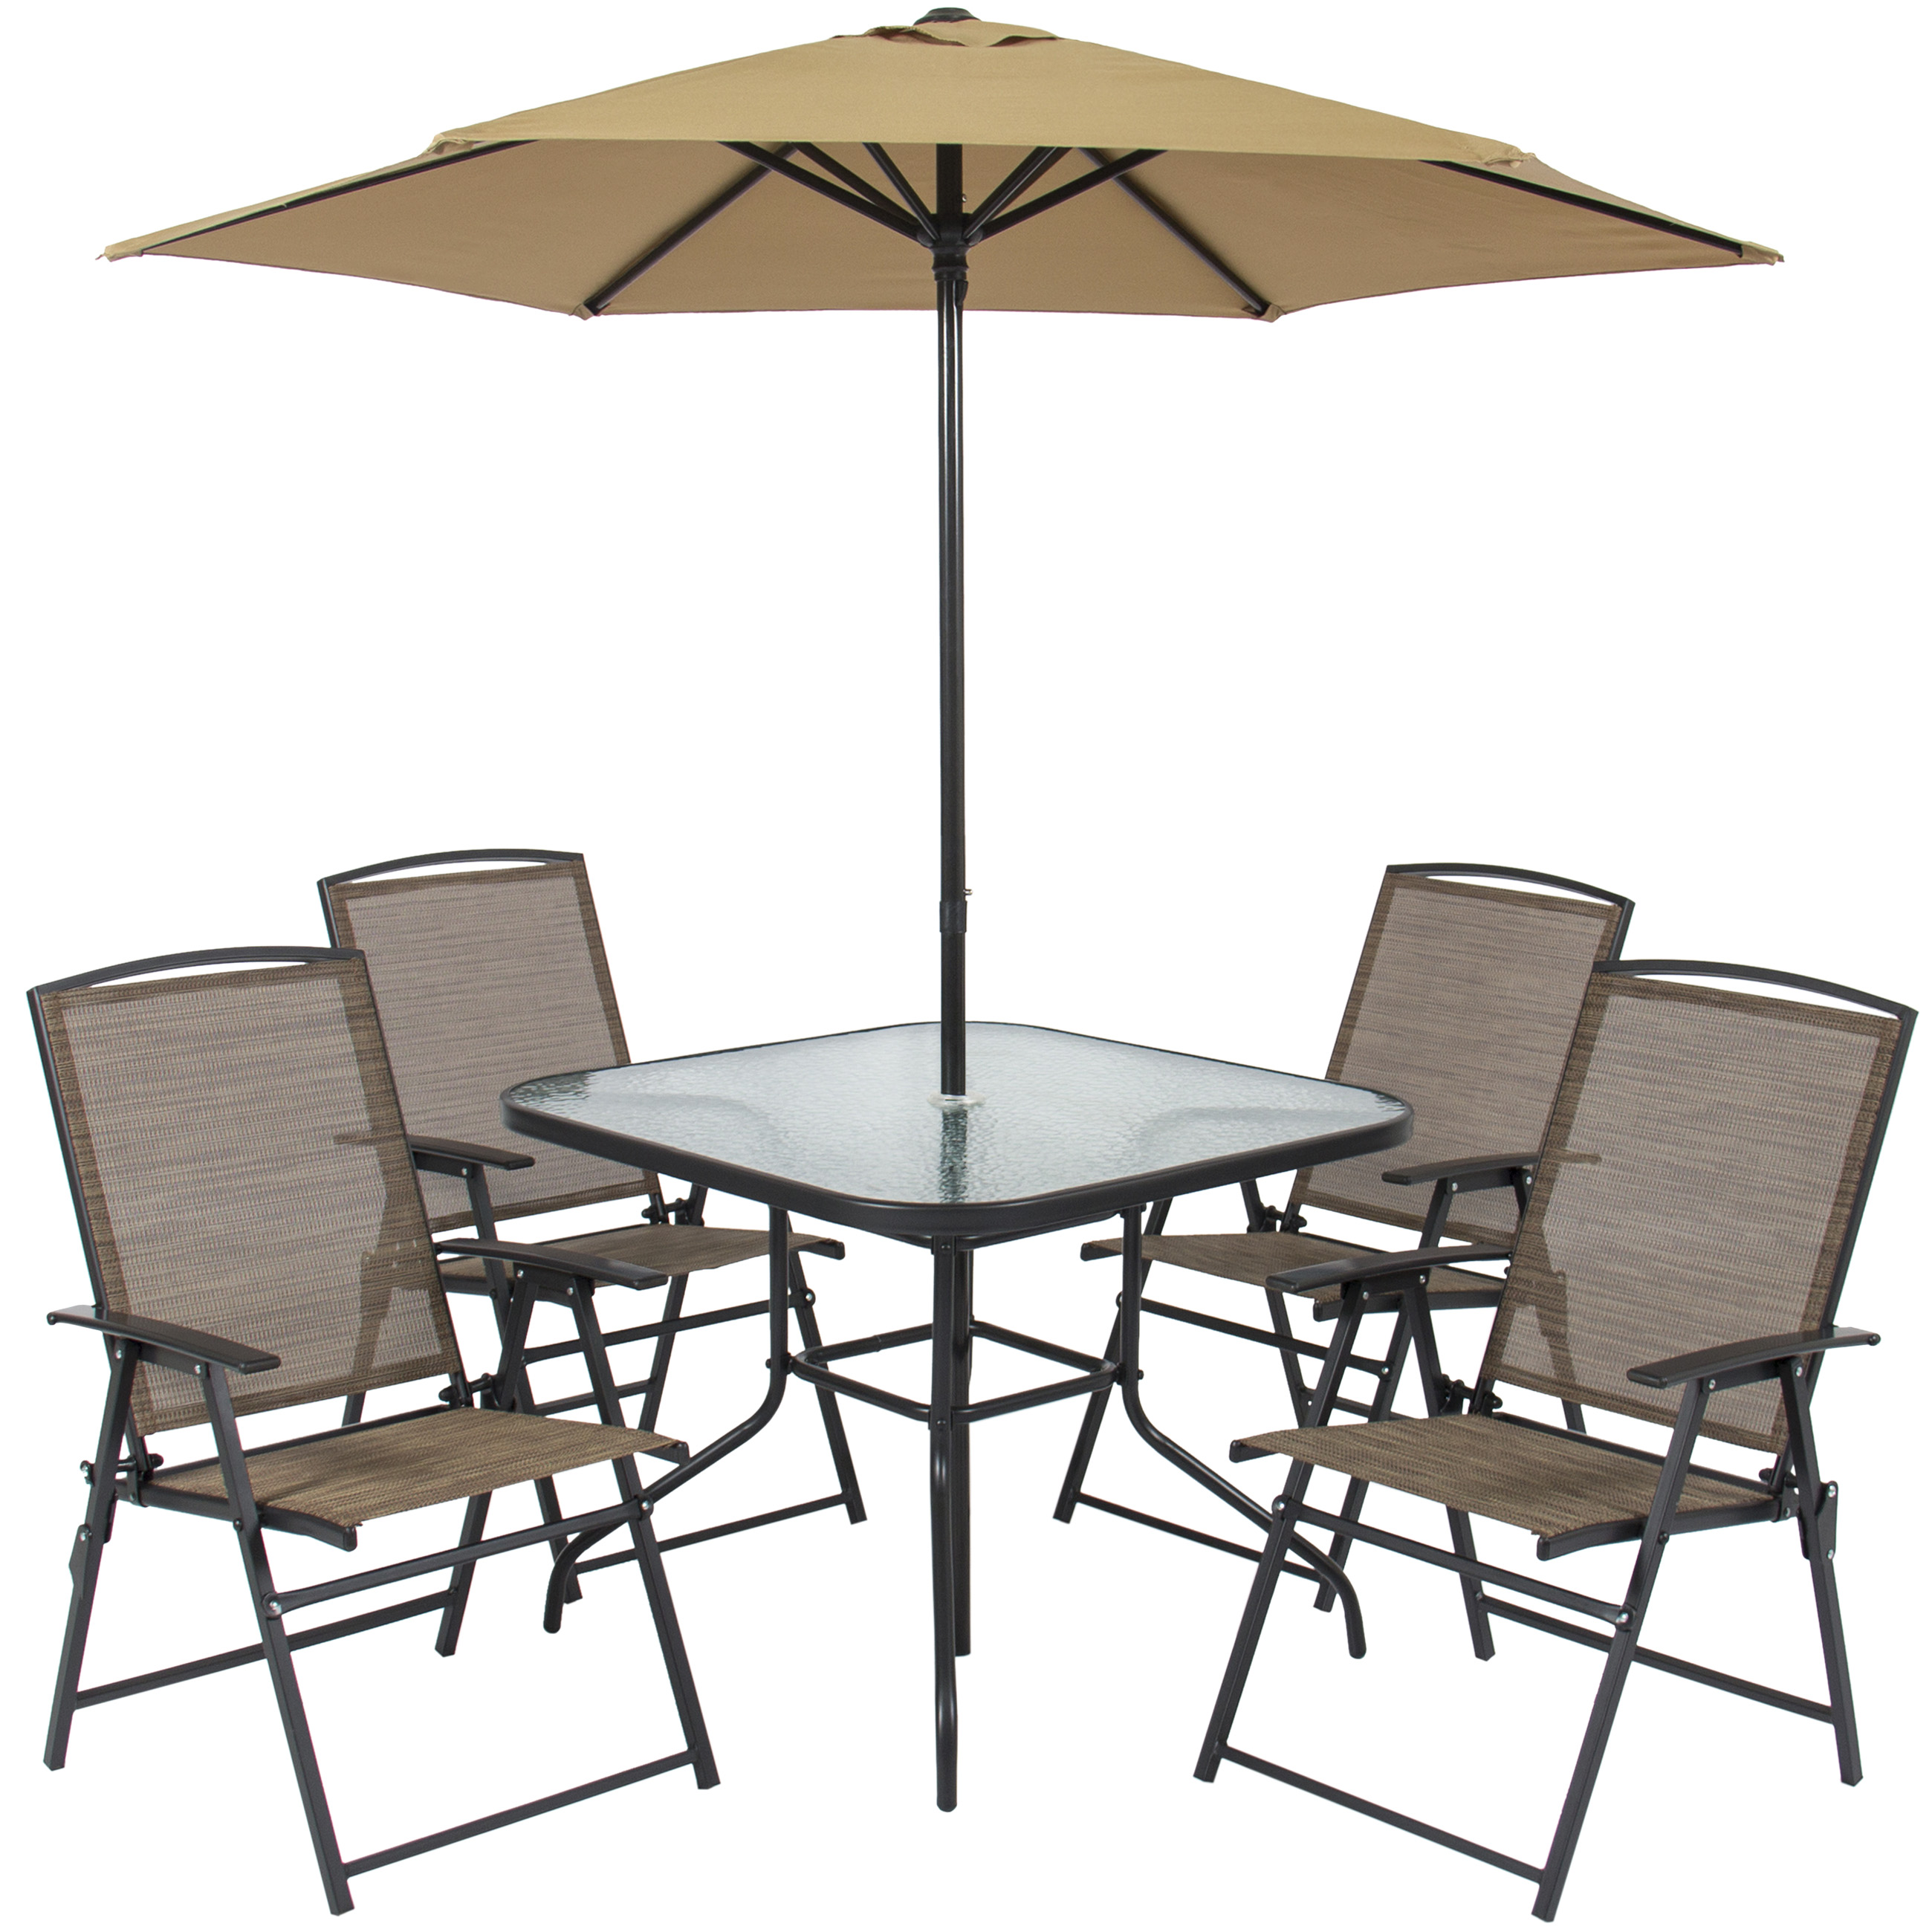 patio table umbrella best choice products 6 outdoor folding patio dining 29074